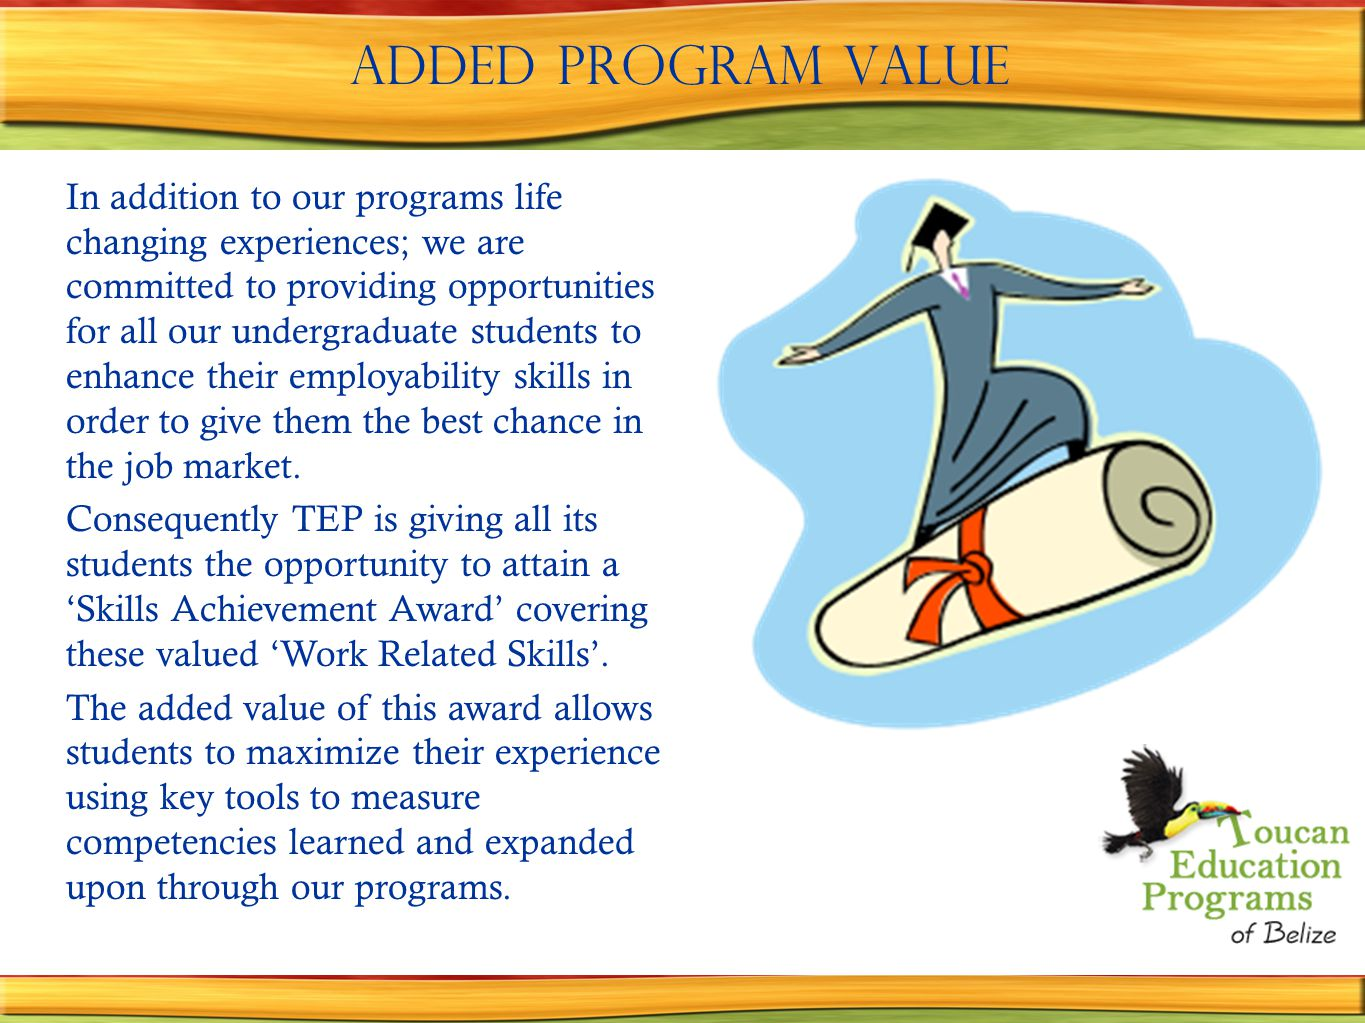 Added Program Value In addition to our programs life changing experiences; we are committed to providing opportunities for all our undergraduate students to enhance their employability skills in order to give them the best chance in the job market.